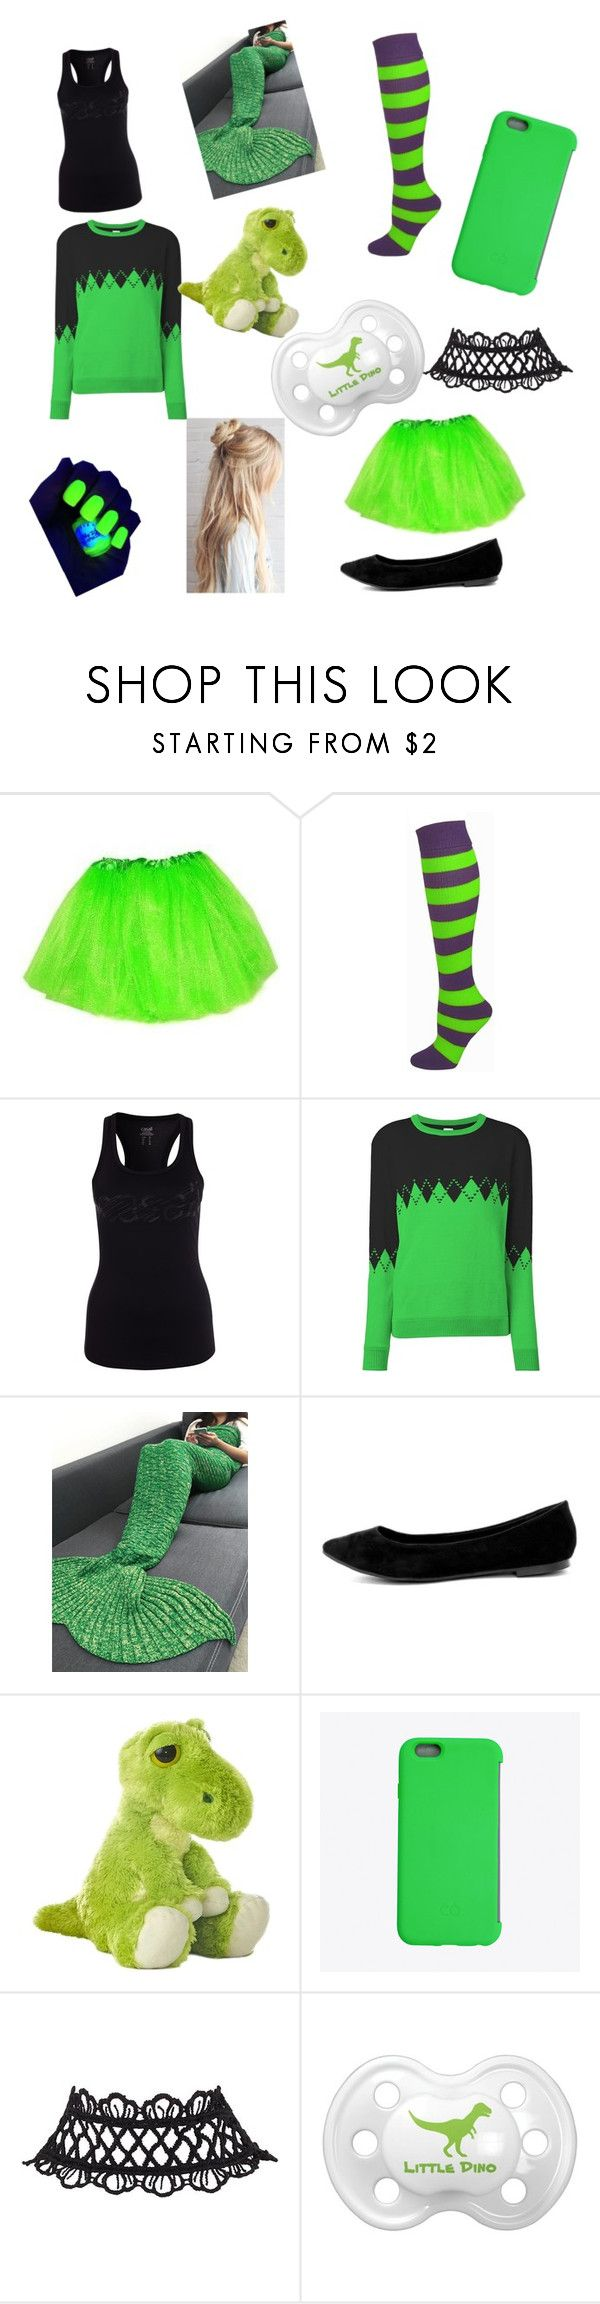 """""""Lime Green and Black Little Outfit """" by daddyswitchylittle ❤ liked on Polyvore featuring Opening Ceremony, Breckelle's and C6"""